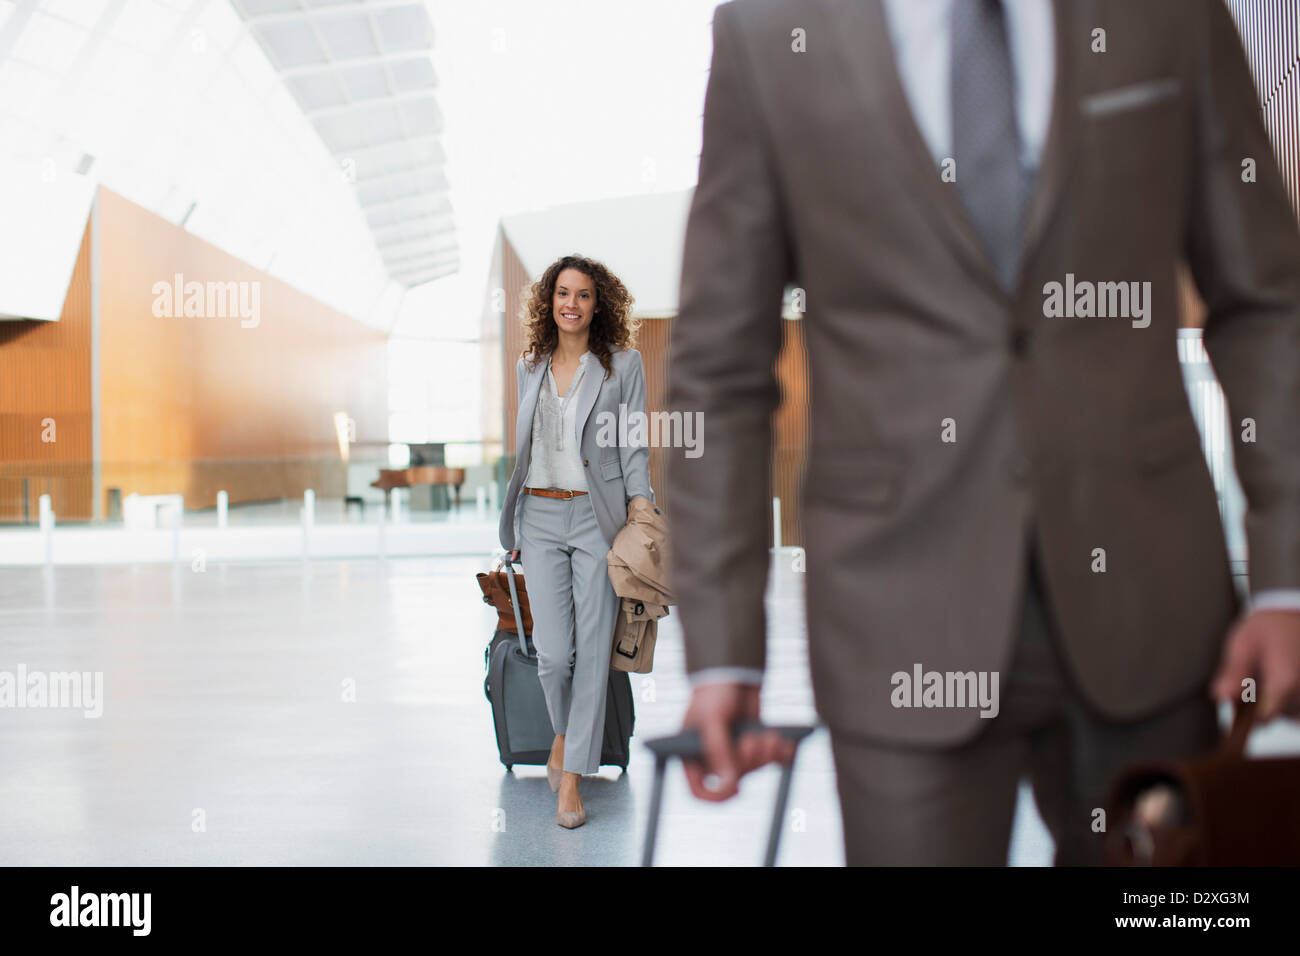 Smiling businesswoman pulling suitcase in airport - Stock Image